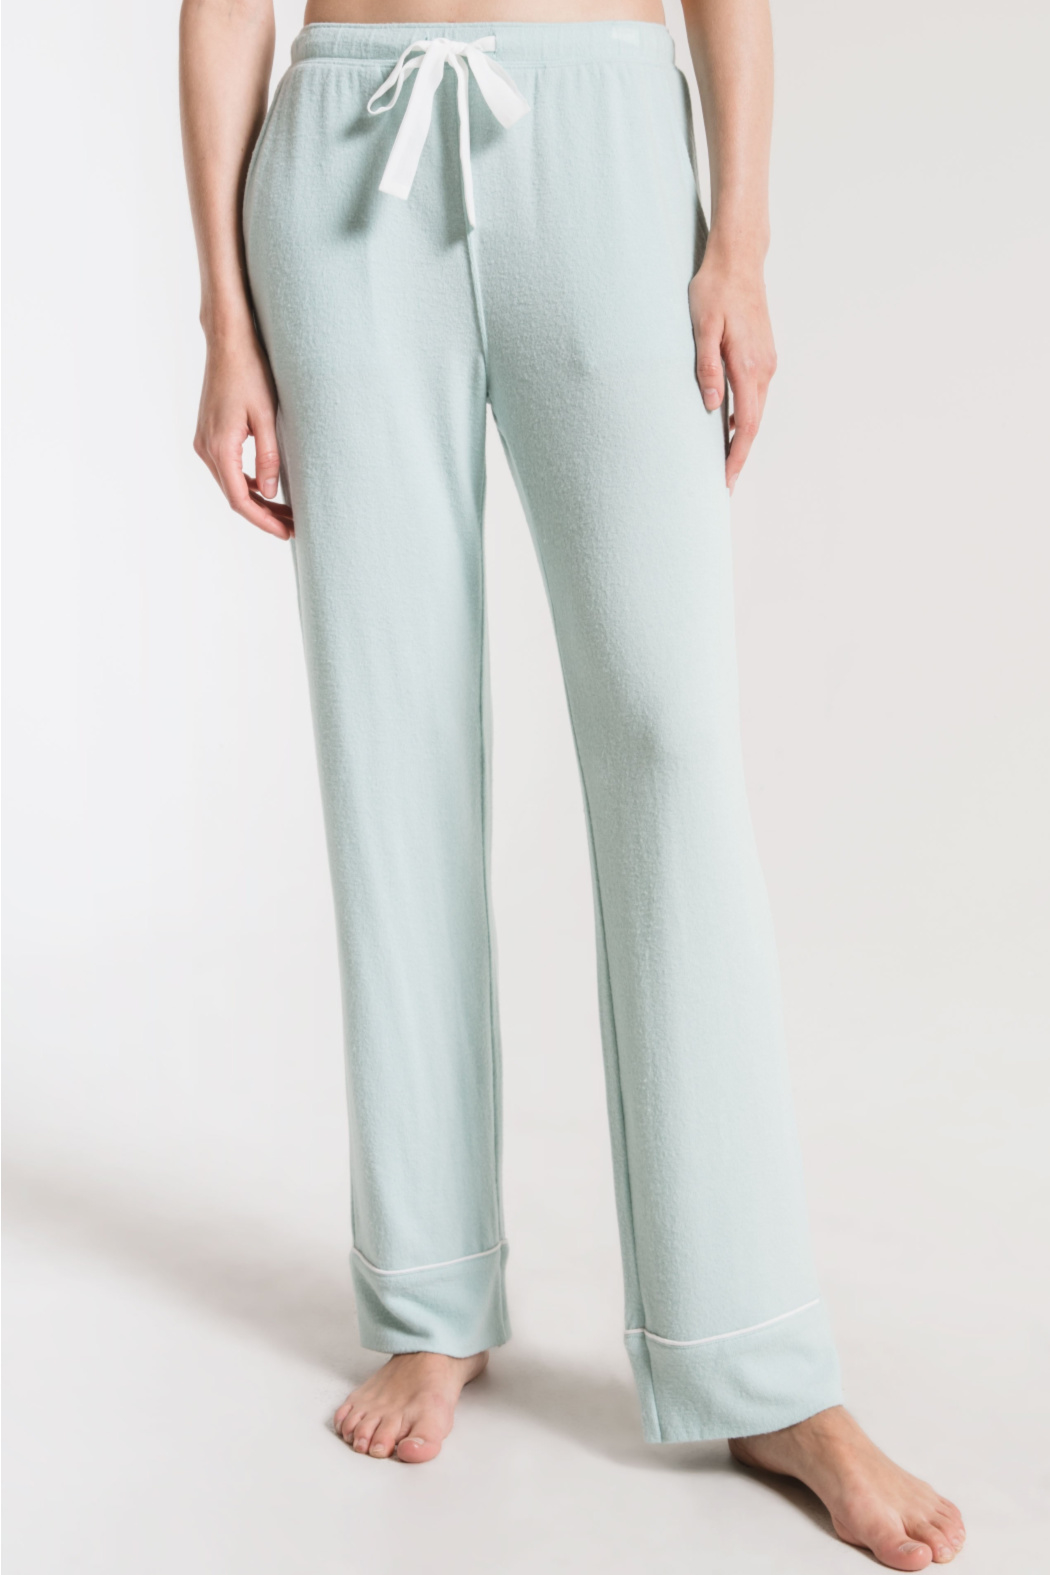 z supply Luxe Menswear PJ Pant - Main Image